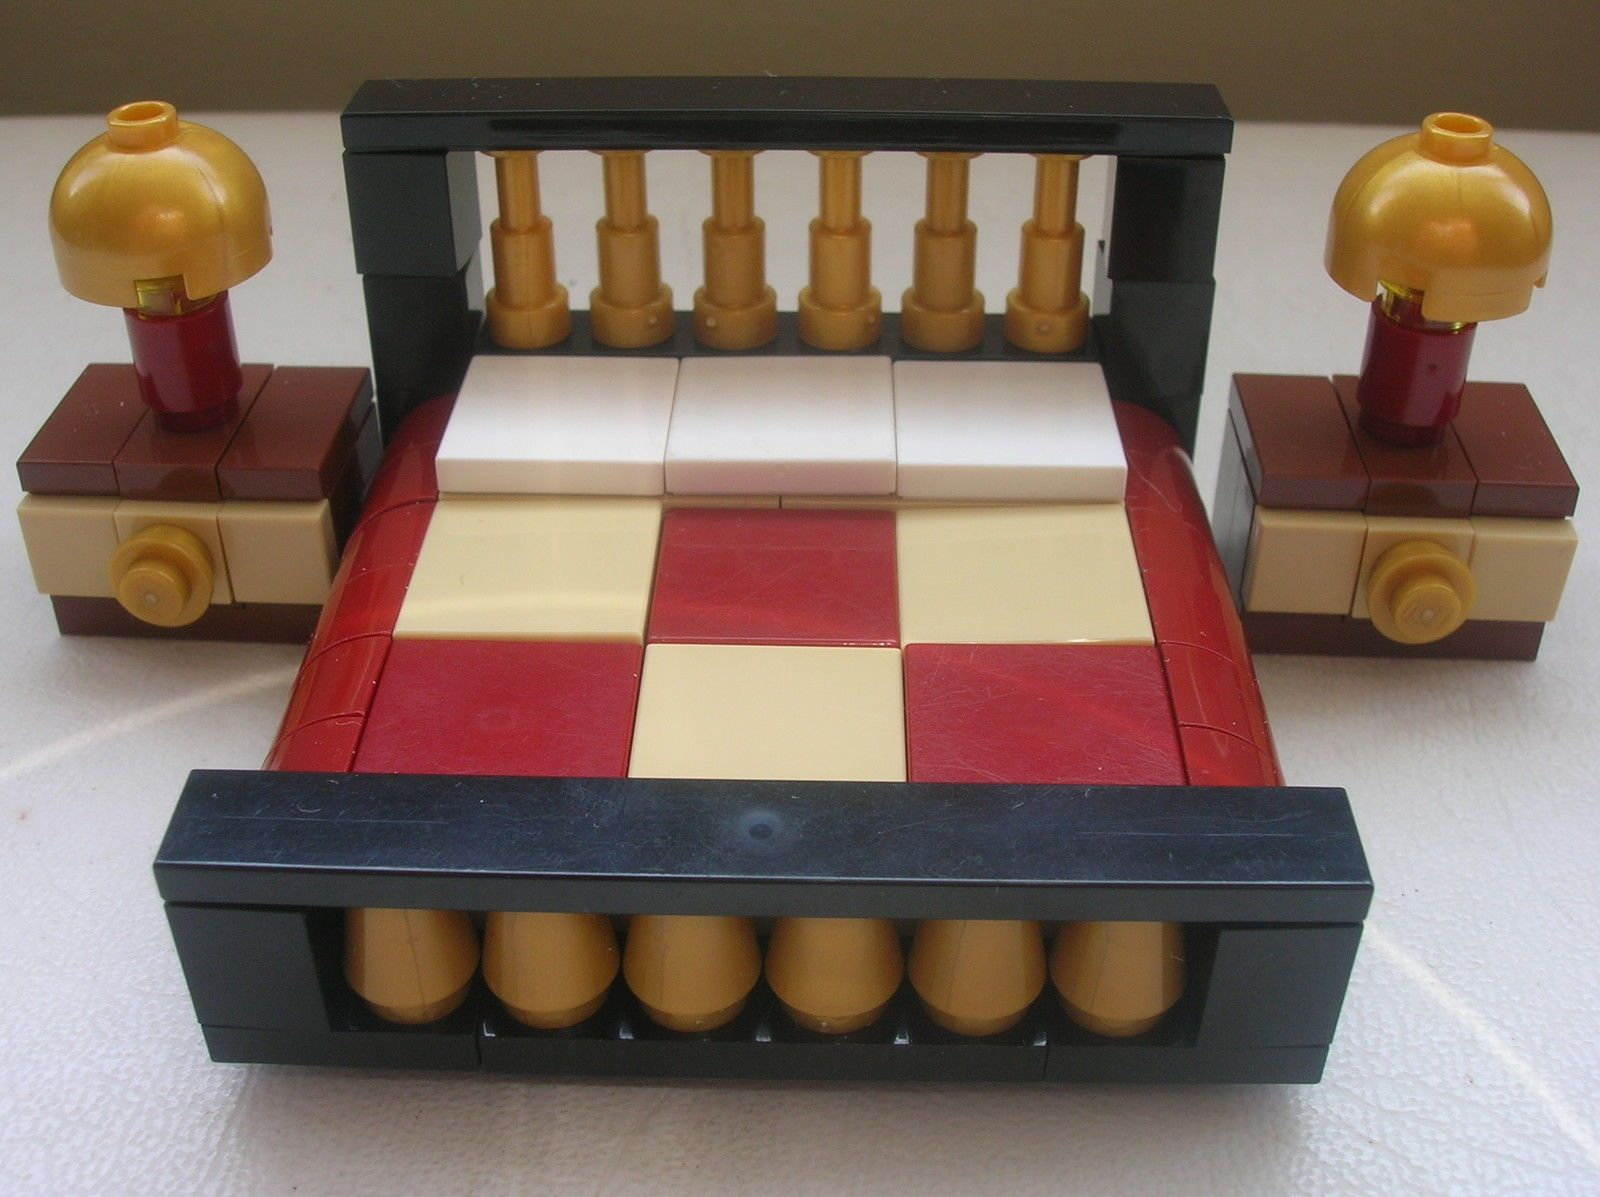 Best Ideas About Lego Furniture On Pinterest Lego Creations - Lego house interior